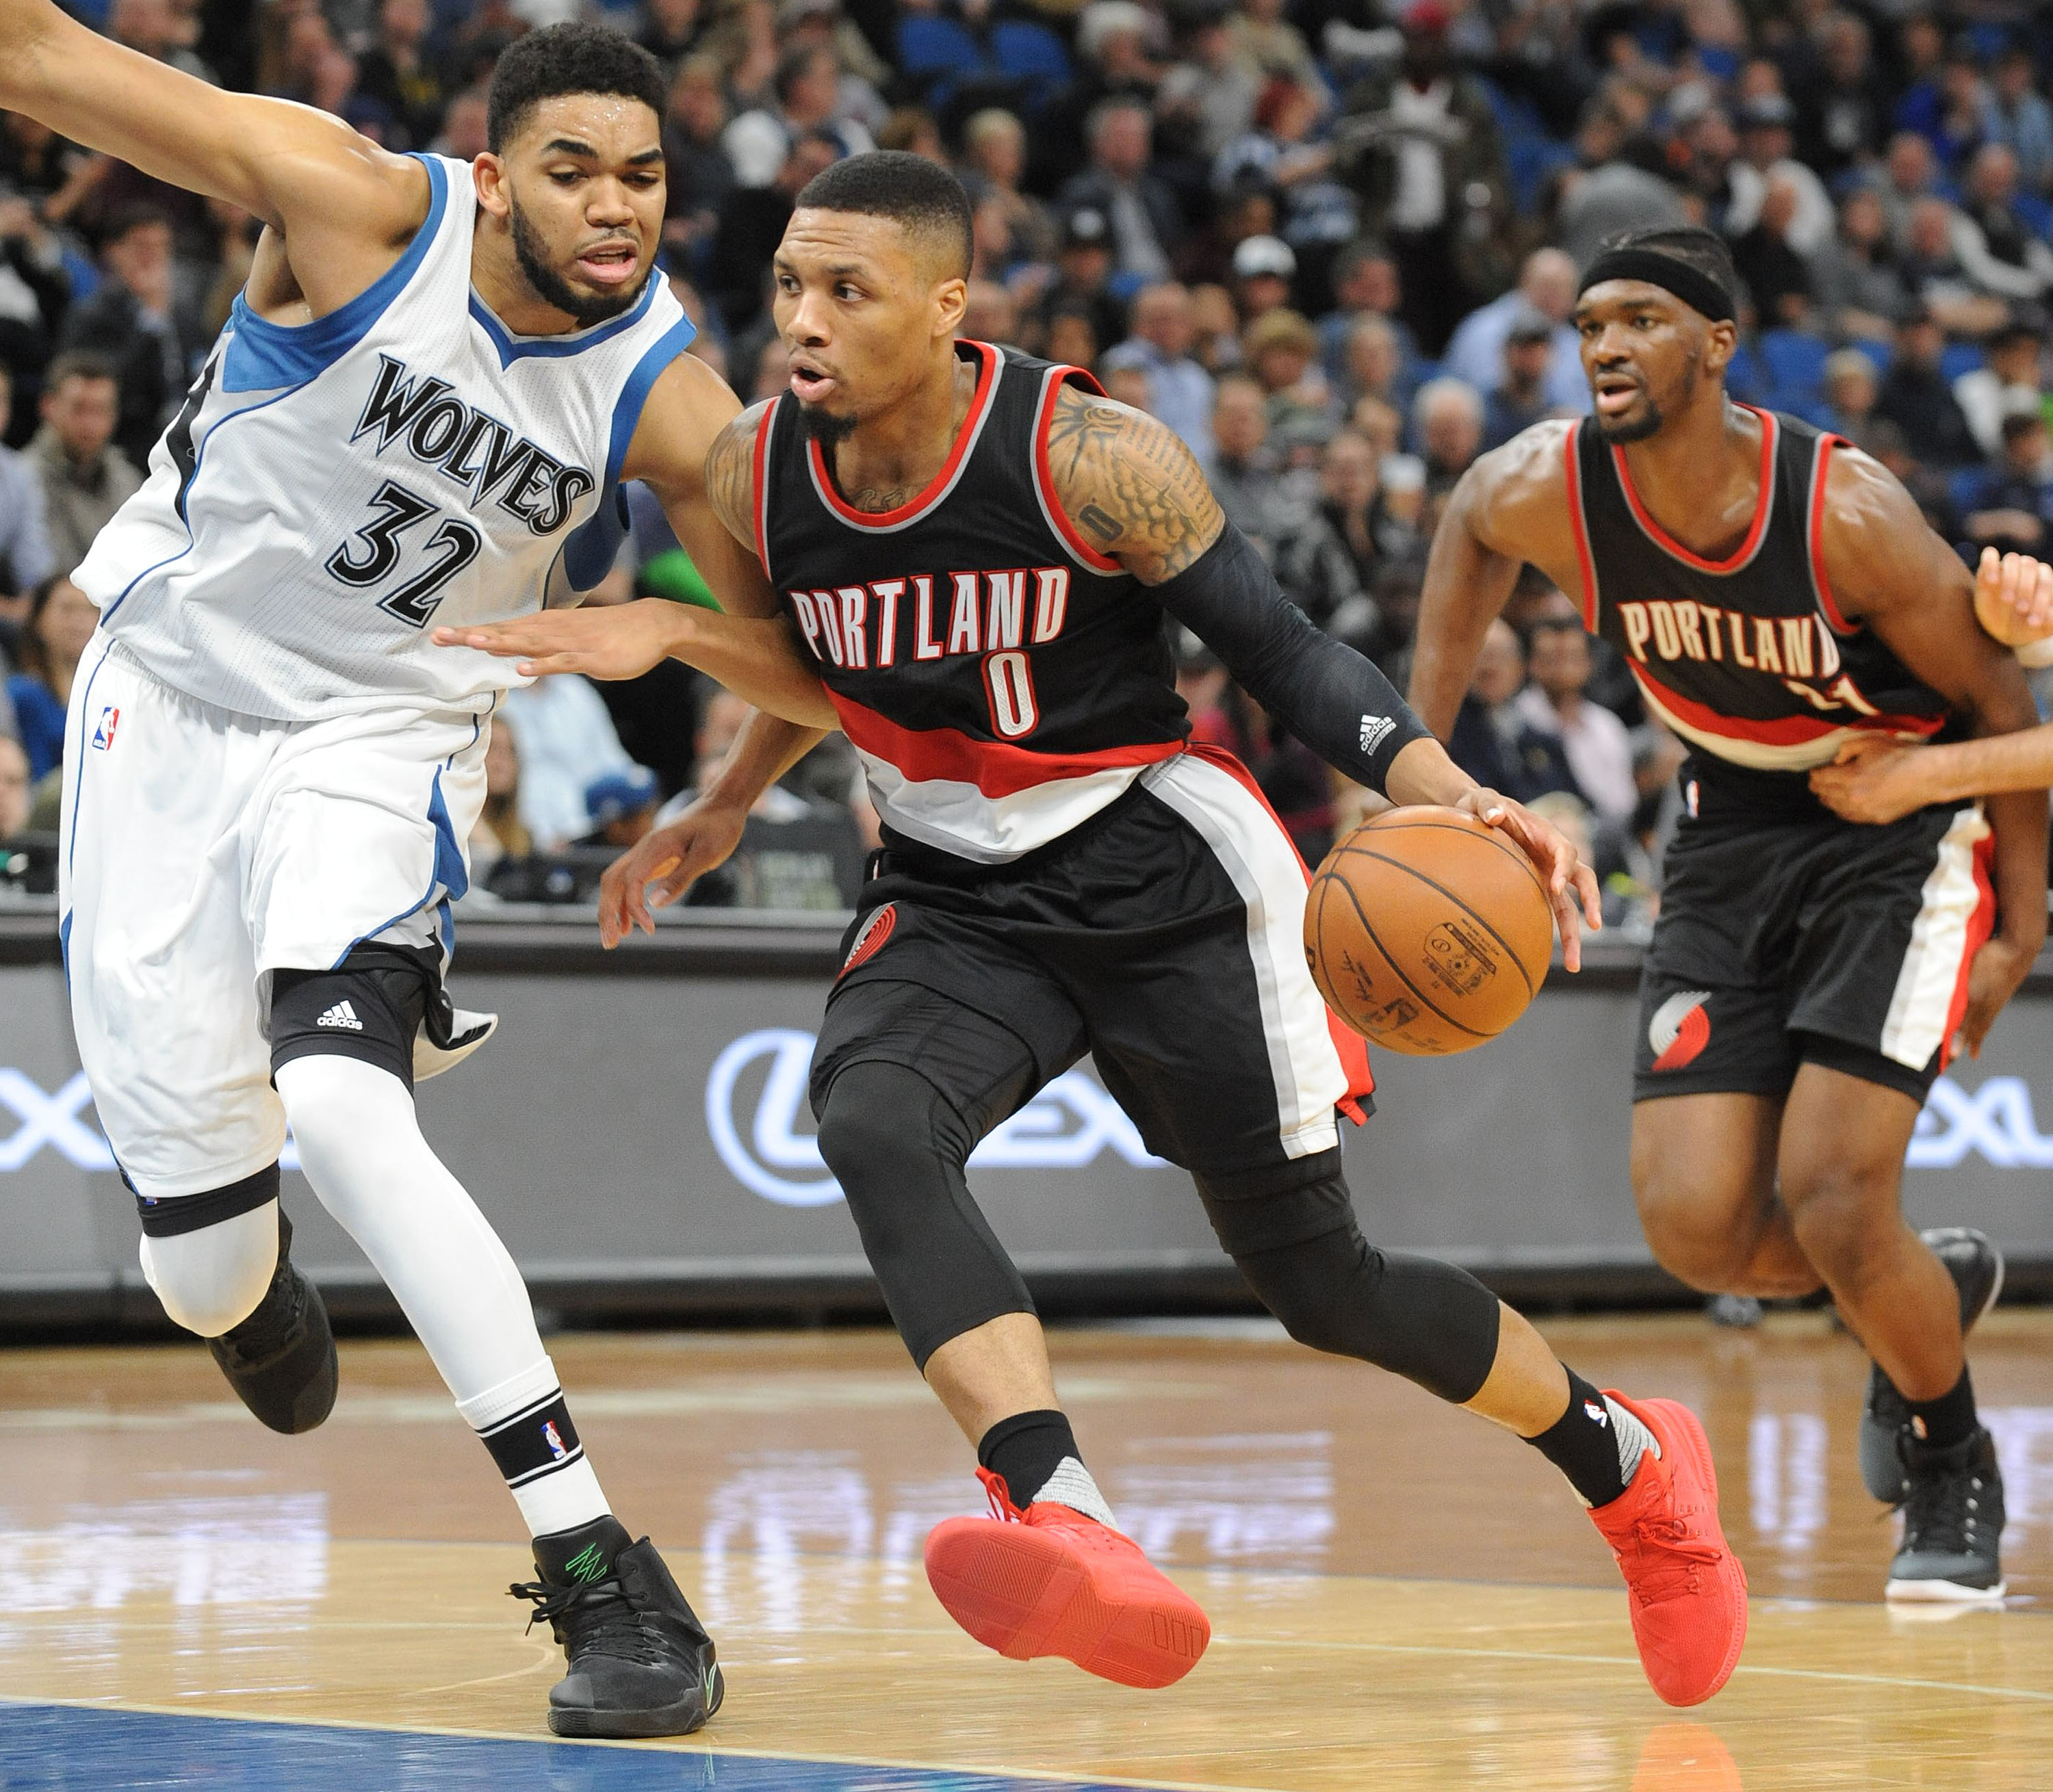 Timberwolves At Trail Blazers Live Stream: How To Watch Online